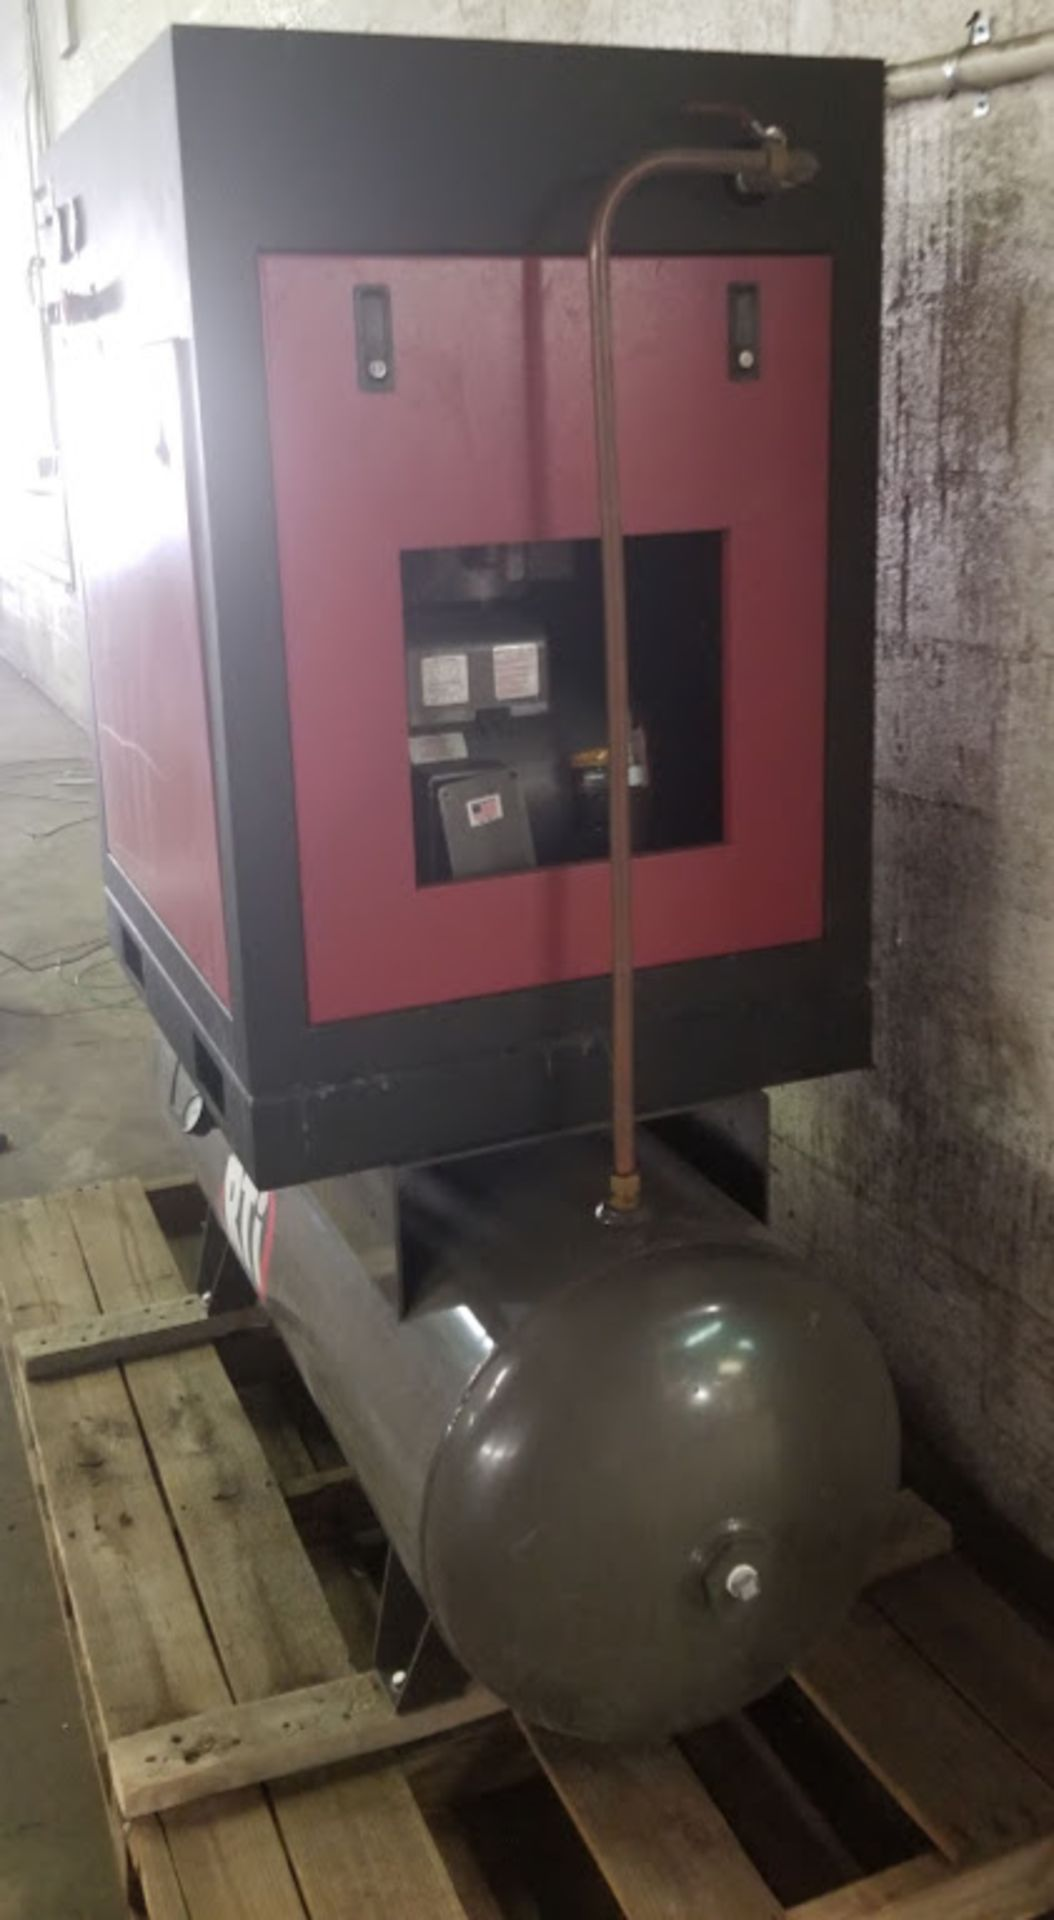 RTI 80 Gallon Rotory Screw Air Compressor, 10HP 230 Volts 1Phase - Image 2 of 4